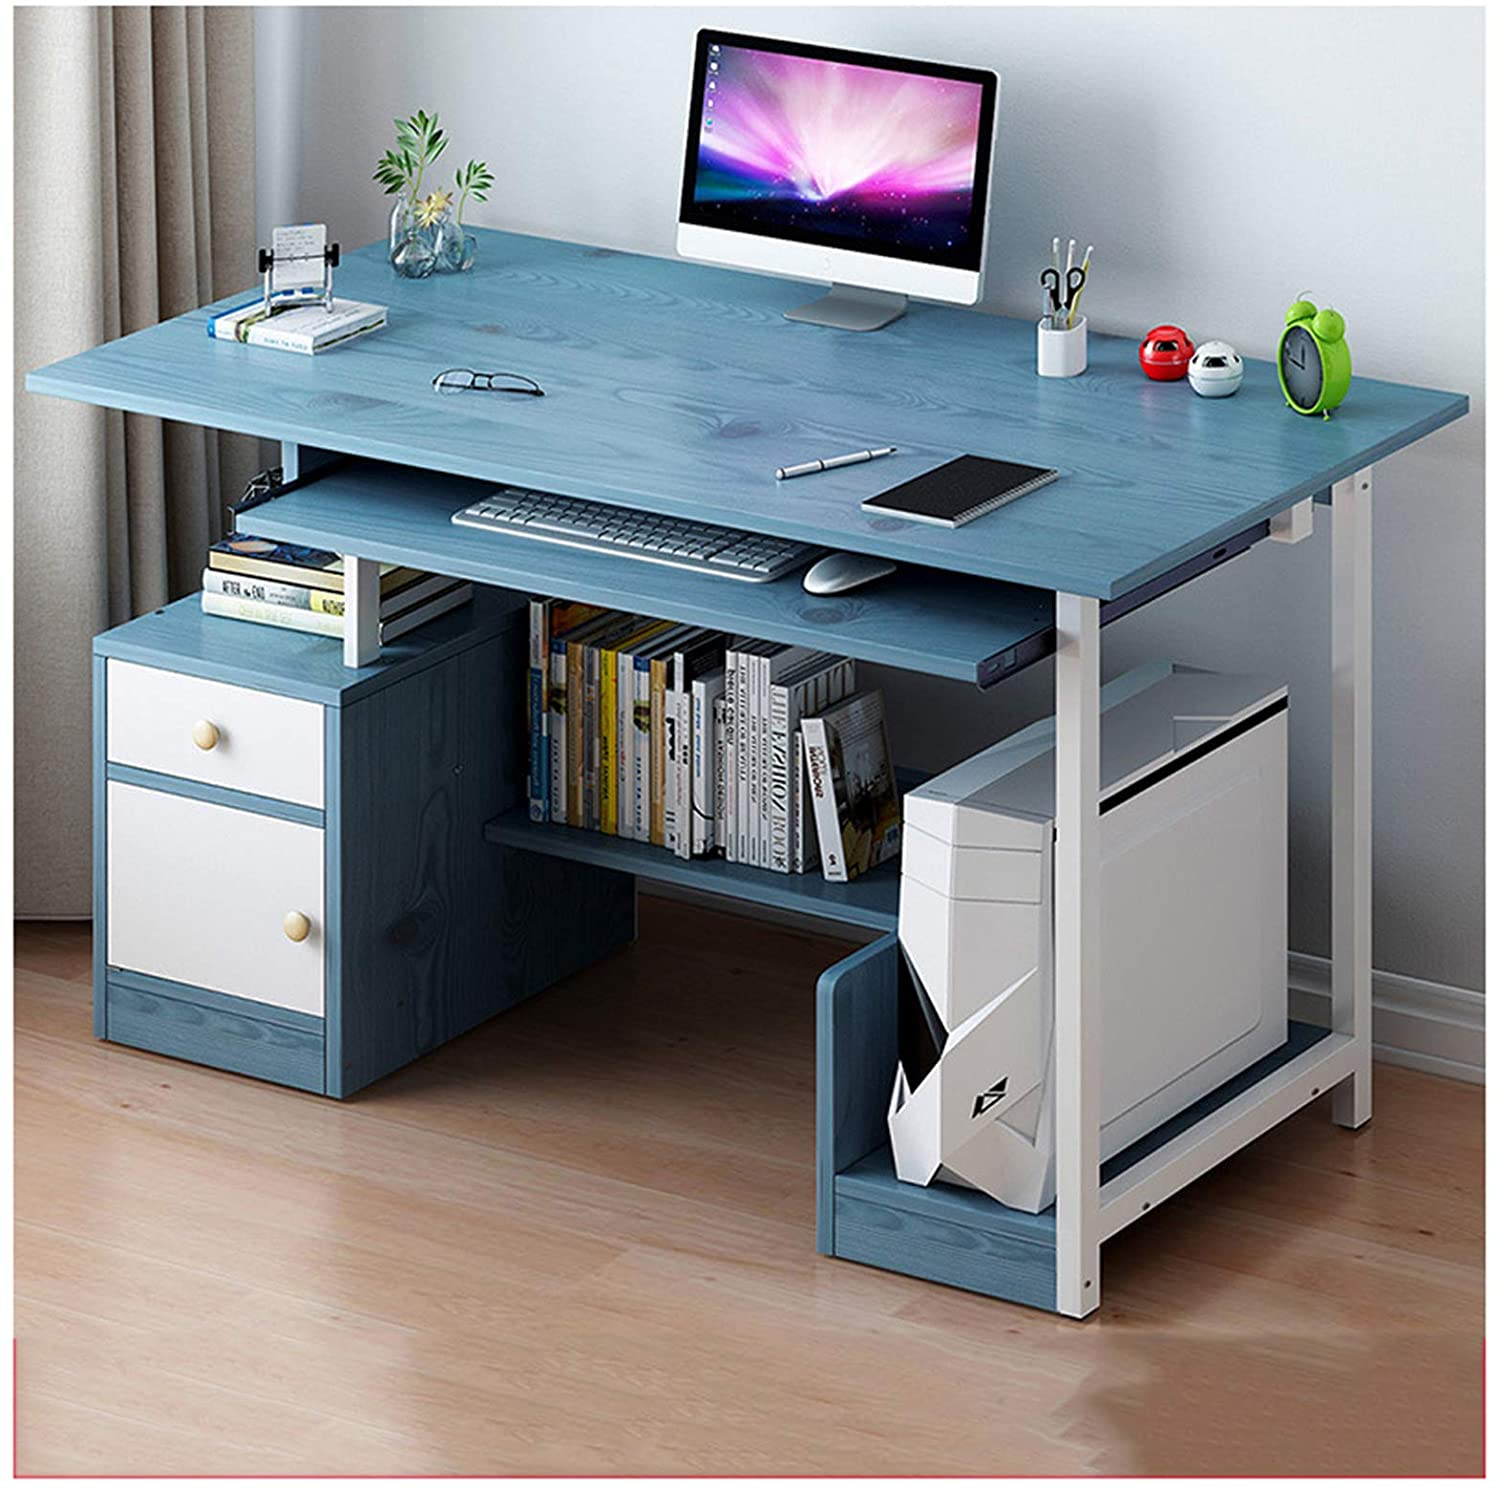 Desk Small Spaces Computer Home Bedroom Gaming with Storage Simple Style Multiple Storage with Keyboard Compartment Main Frame,Blue,904072